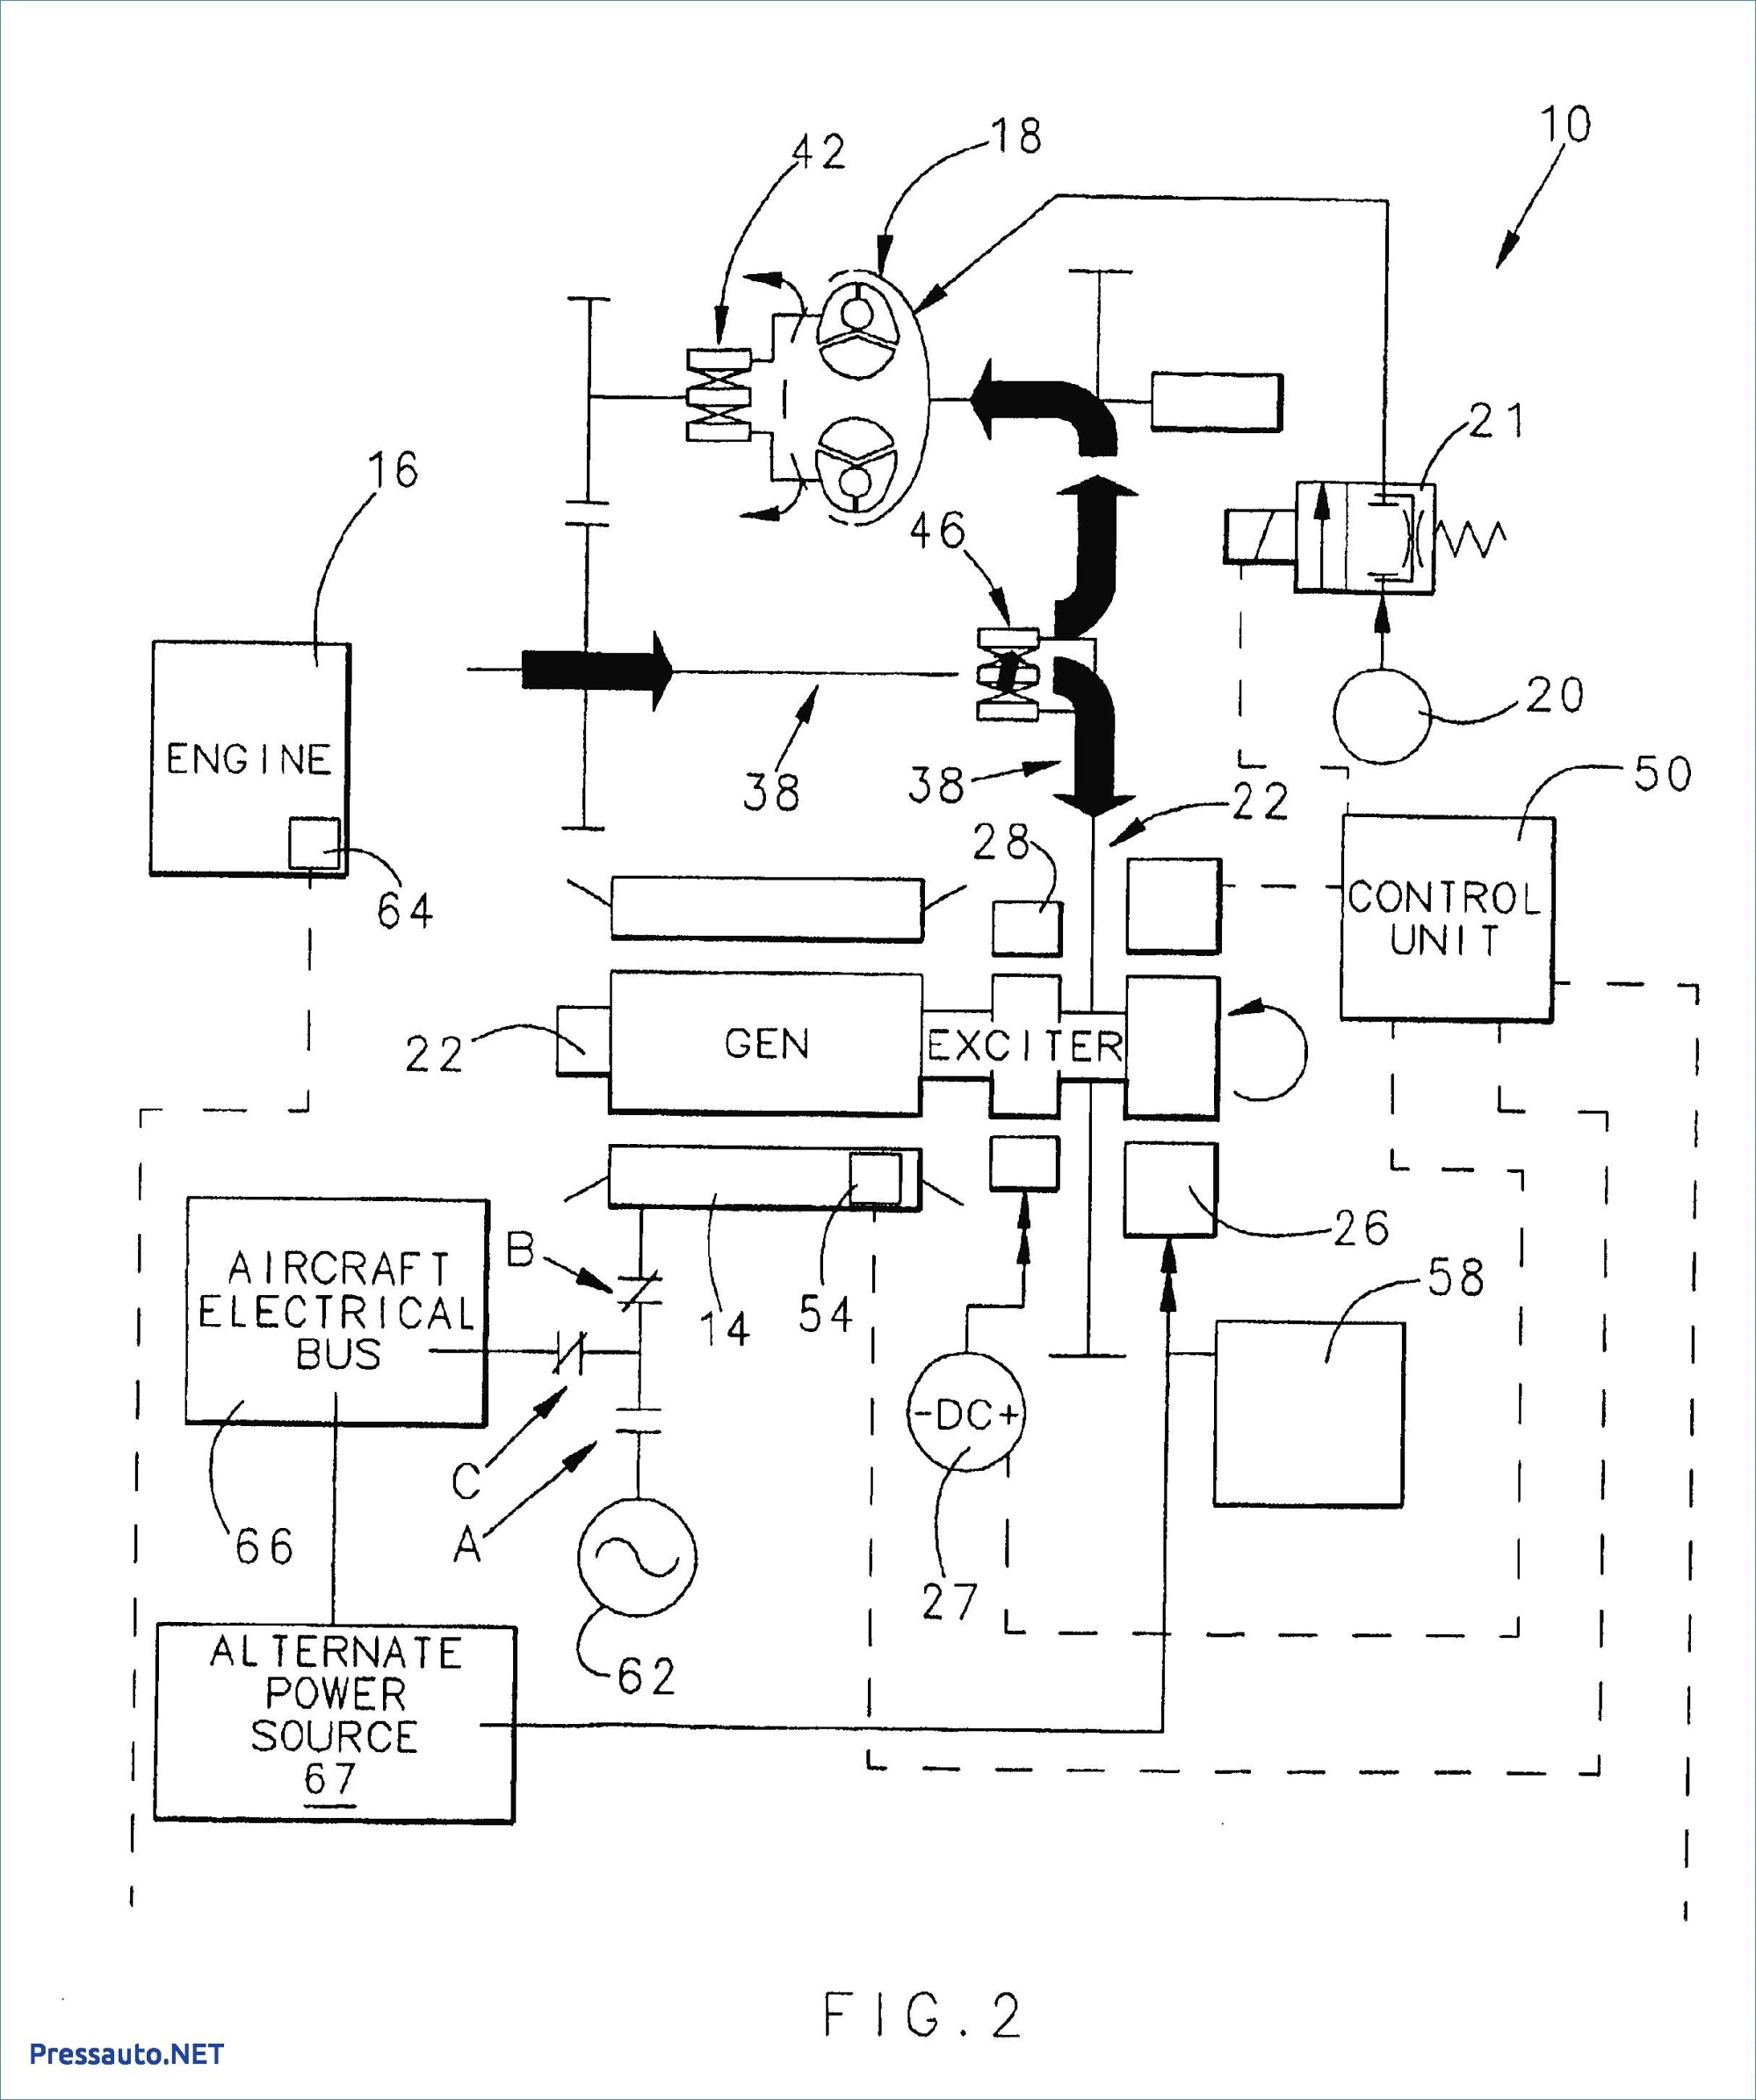 hight resolution of 2001 galant engine diagram simple wiring diagram rh 34 mara cujas de 2001 mitsubishi eclipse belt diagram 2003 mitsubishi eclipse engine diagram